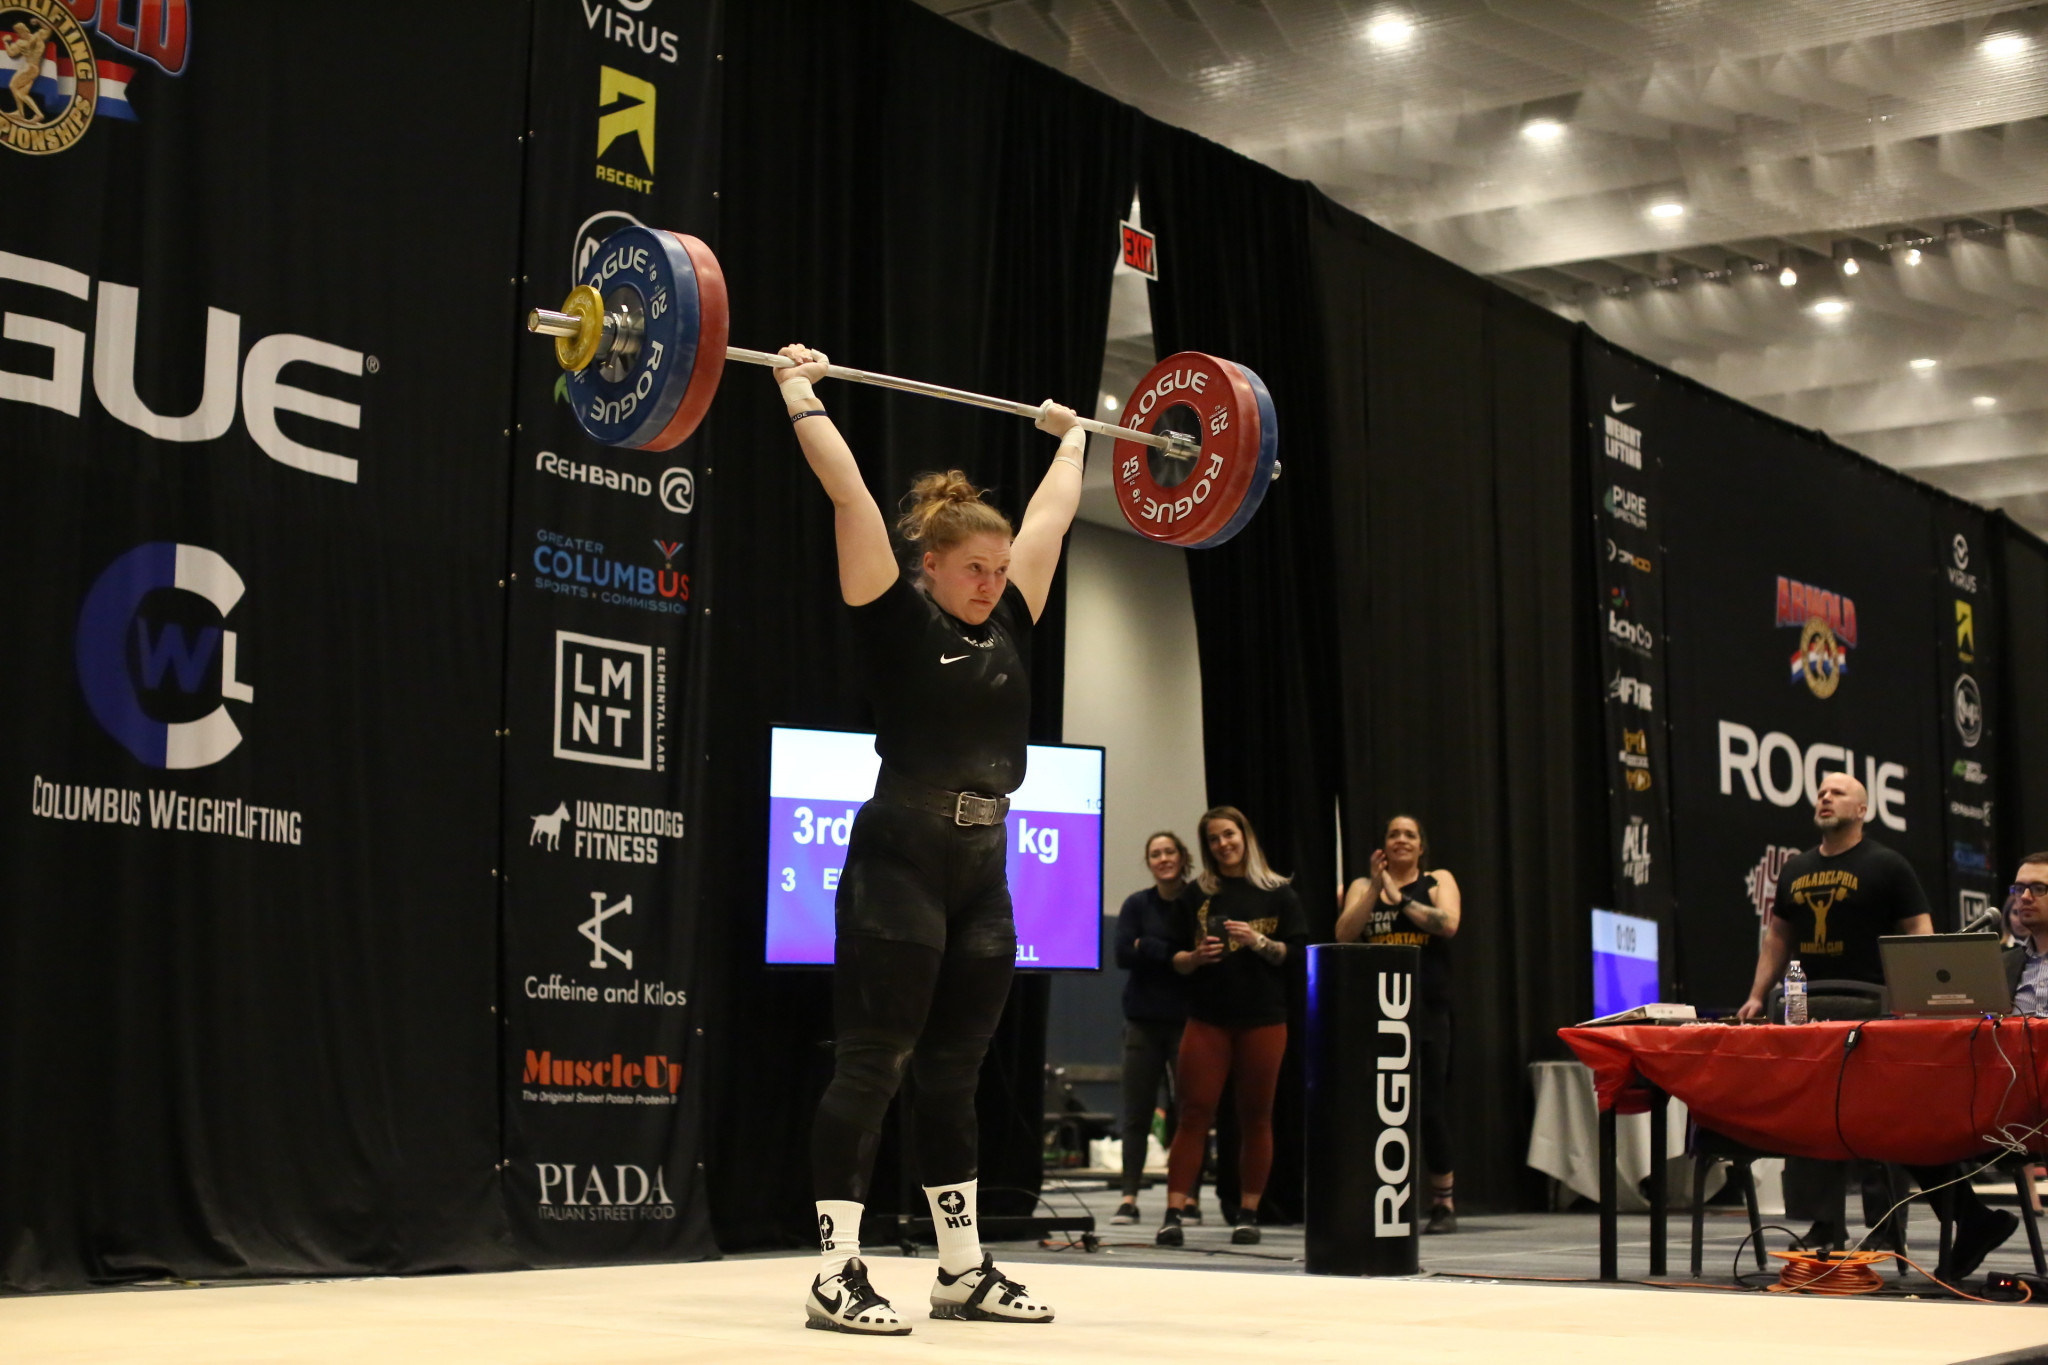 Live weightlifting is back in style in Spain and Salt Lake City